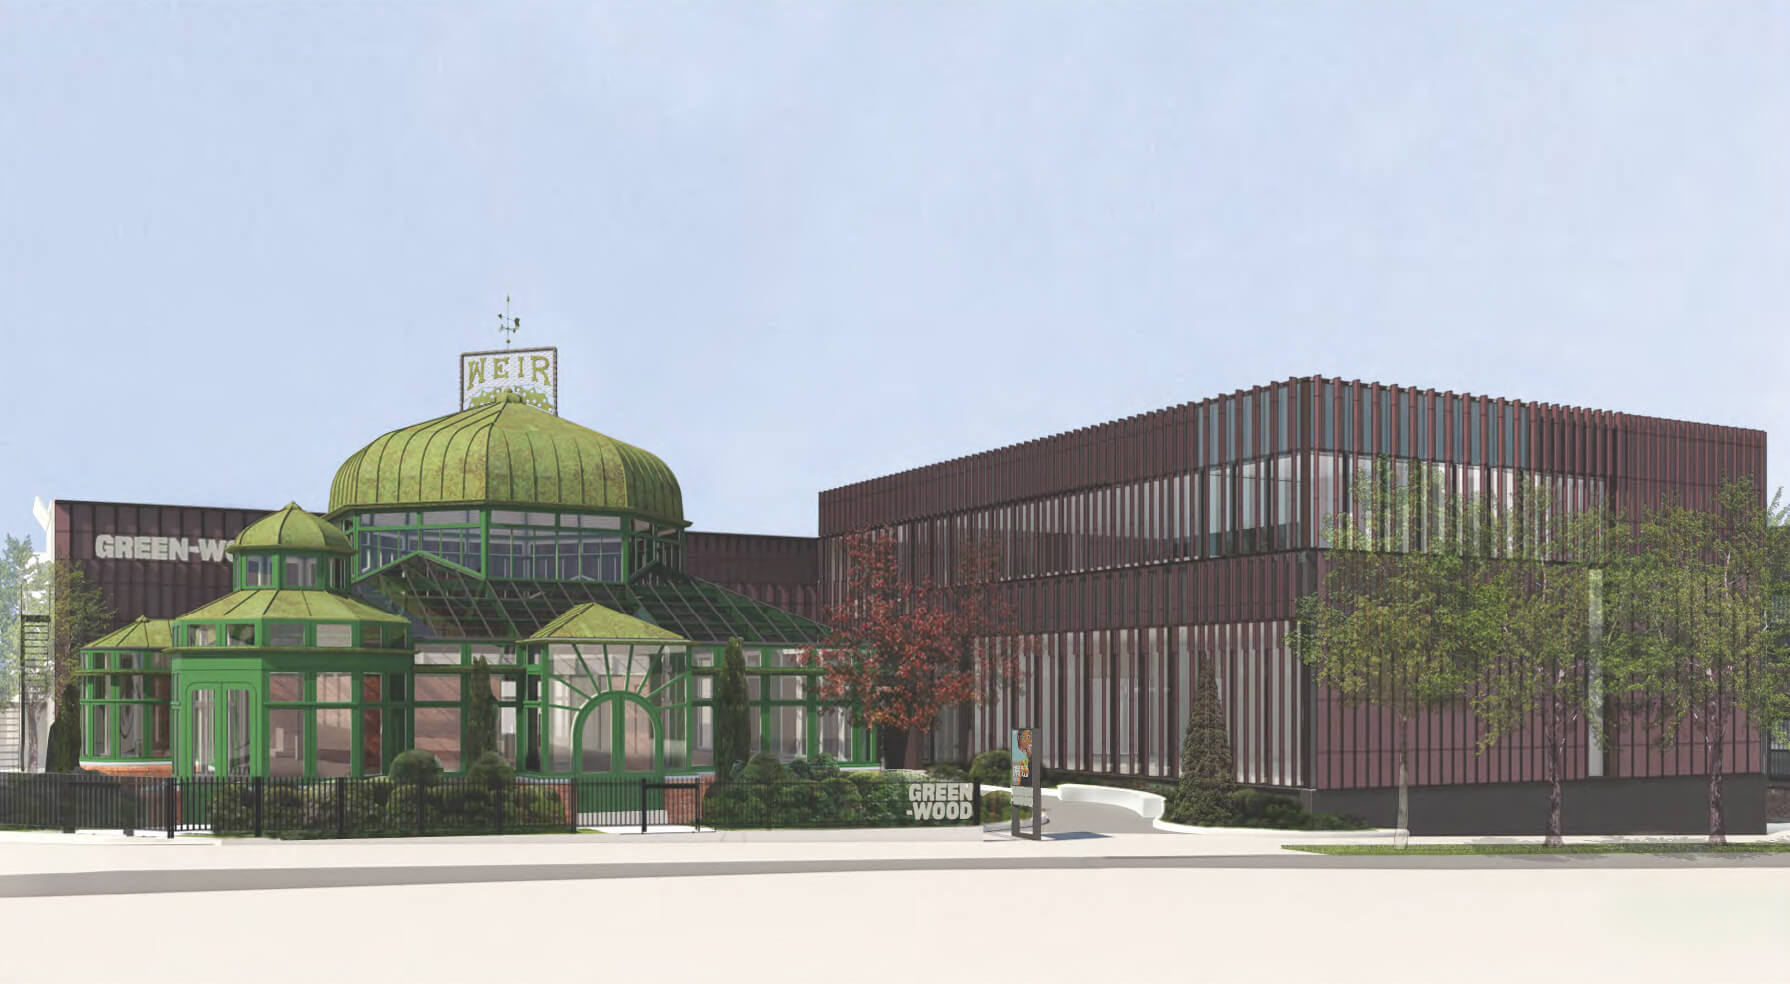 Rendering of the new Green-Wood Cemetery welcome center - Architecture Research Office (ARO)